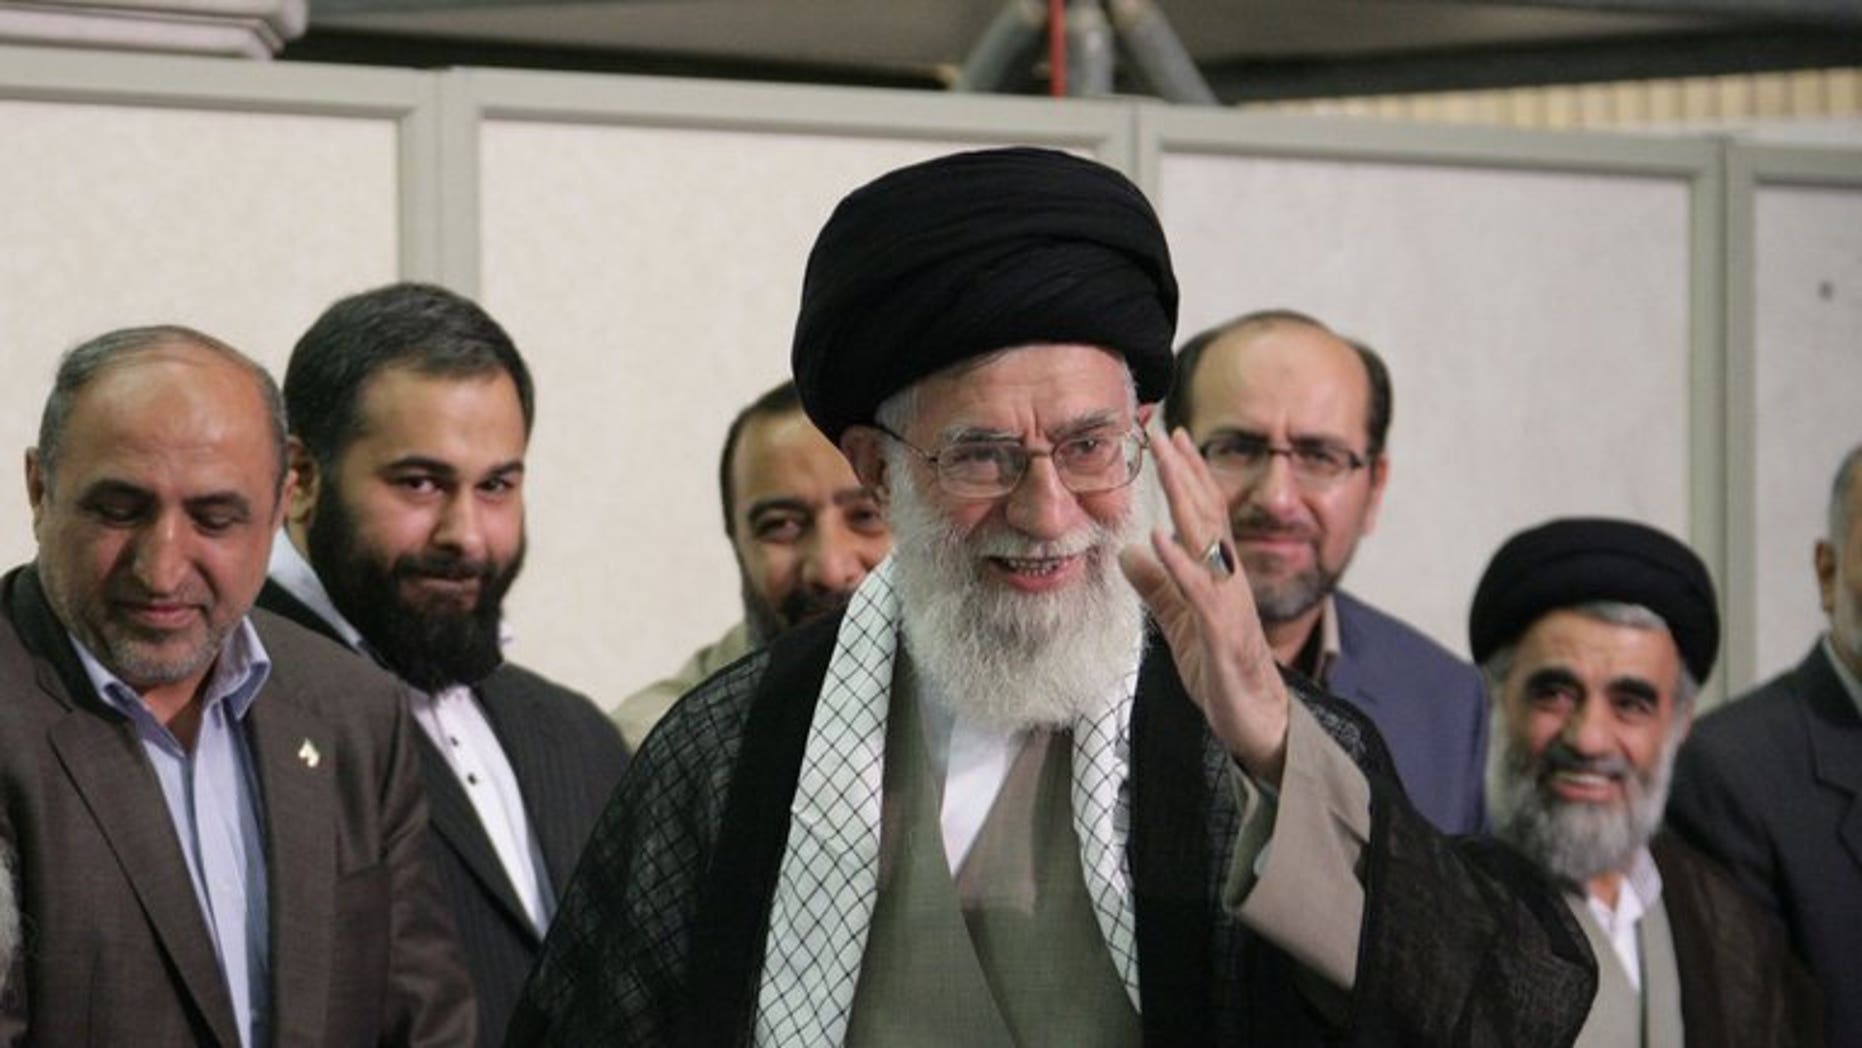 A handout picture released by the official website of the Iranian supreme leader Ayatollah Ali Khamenei shows him (C) smiling in Tehran on June 14, 2013. Khamenei on Tuesday appointed four clerics to Iran's powerful Guardians Council, a body dominated by ultra-conservatives that interprets the constitution and supervises elections, media reported.